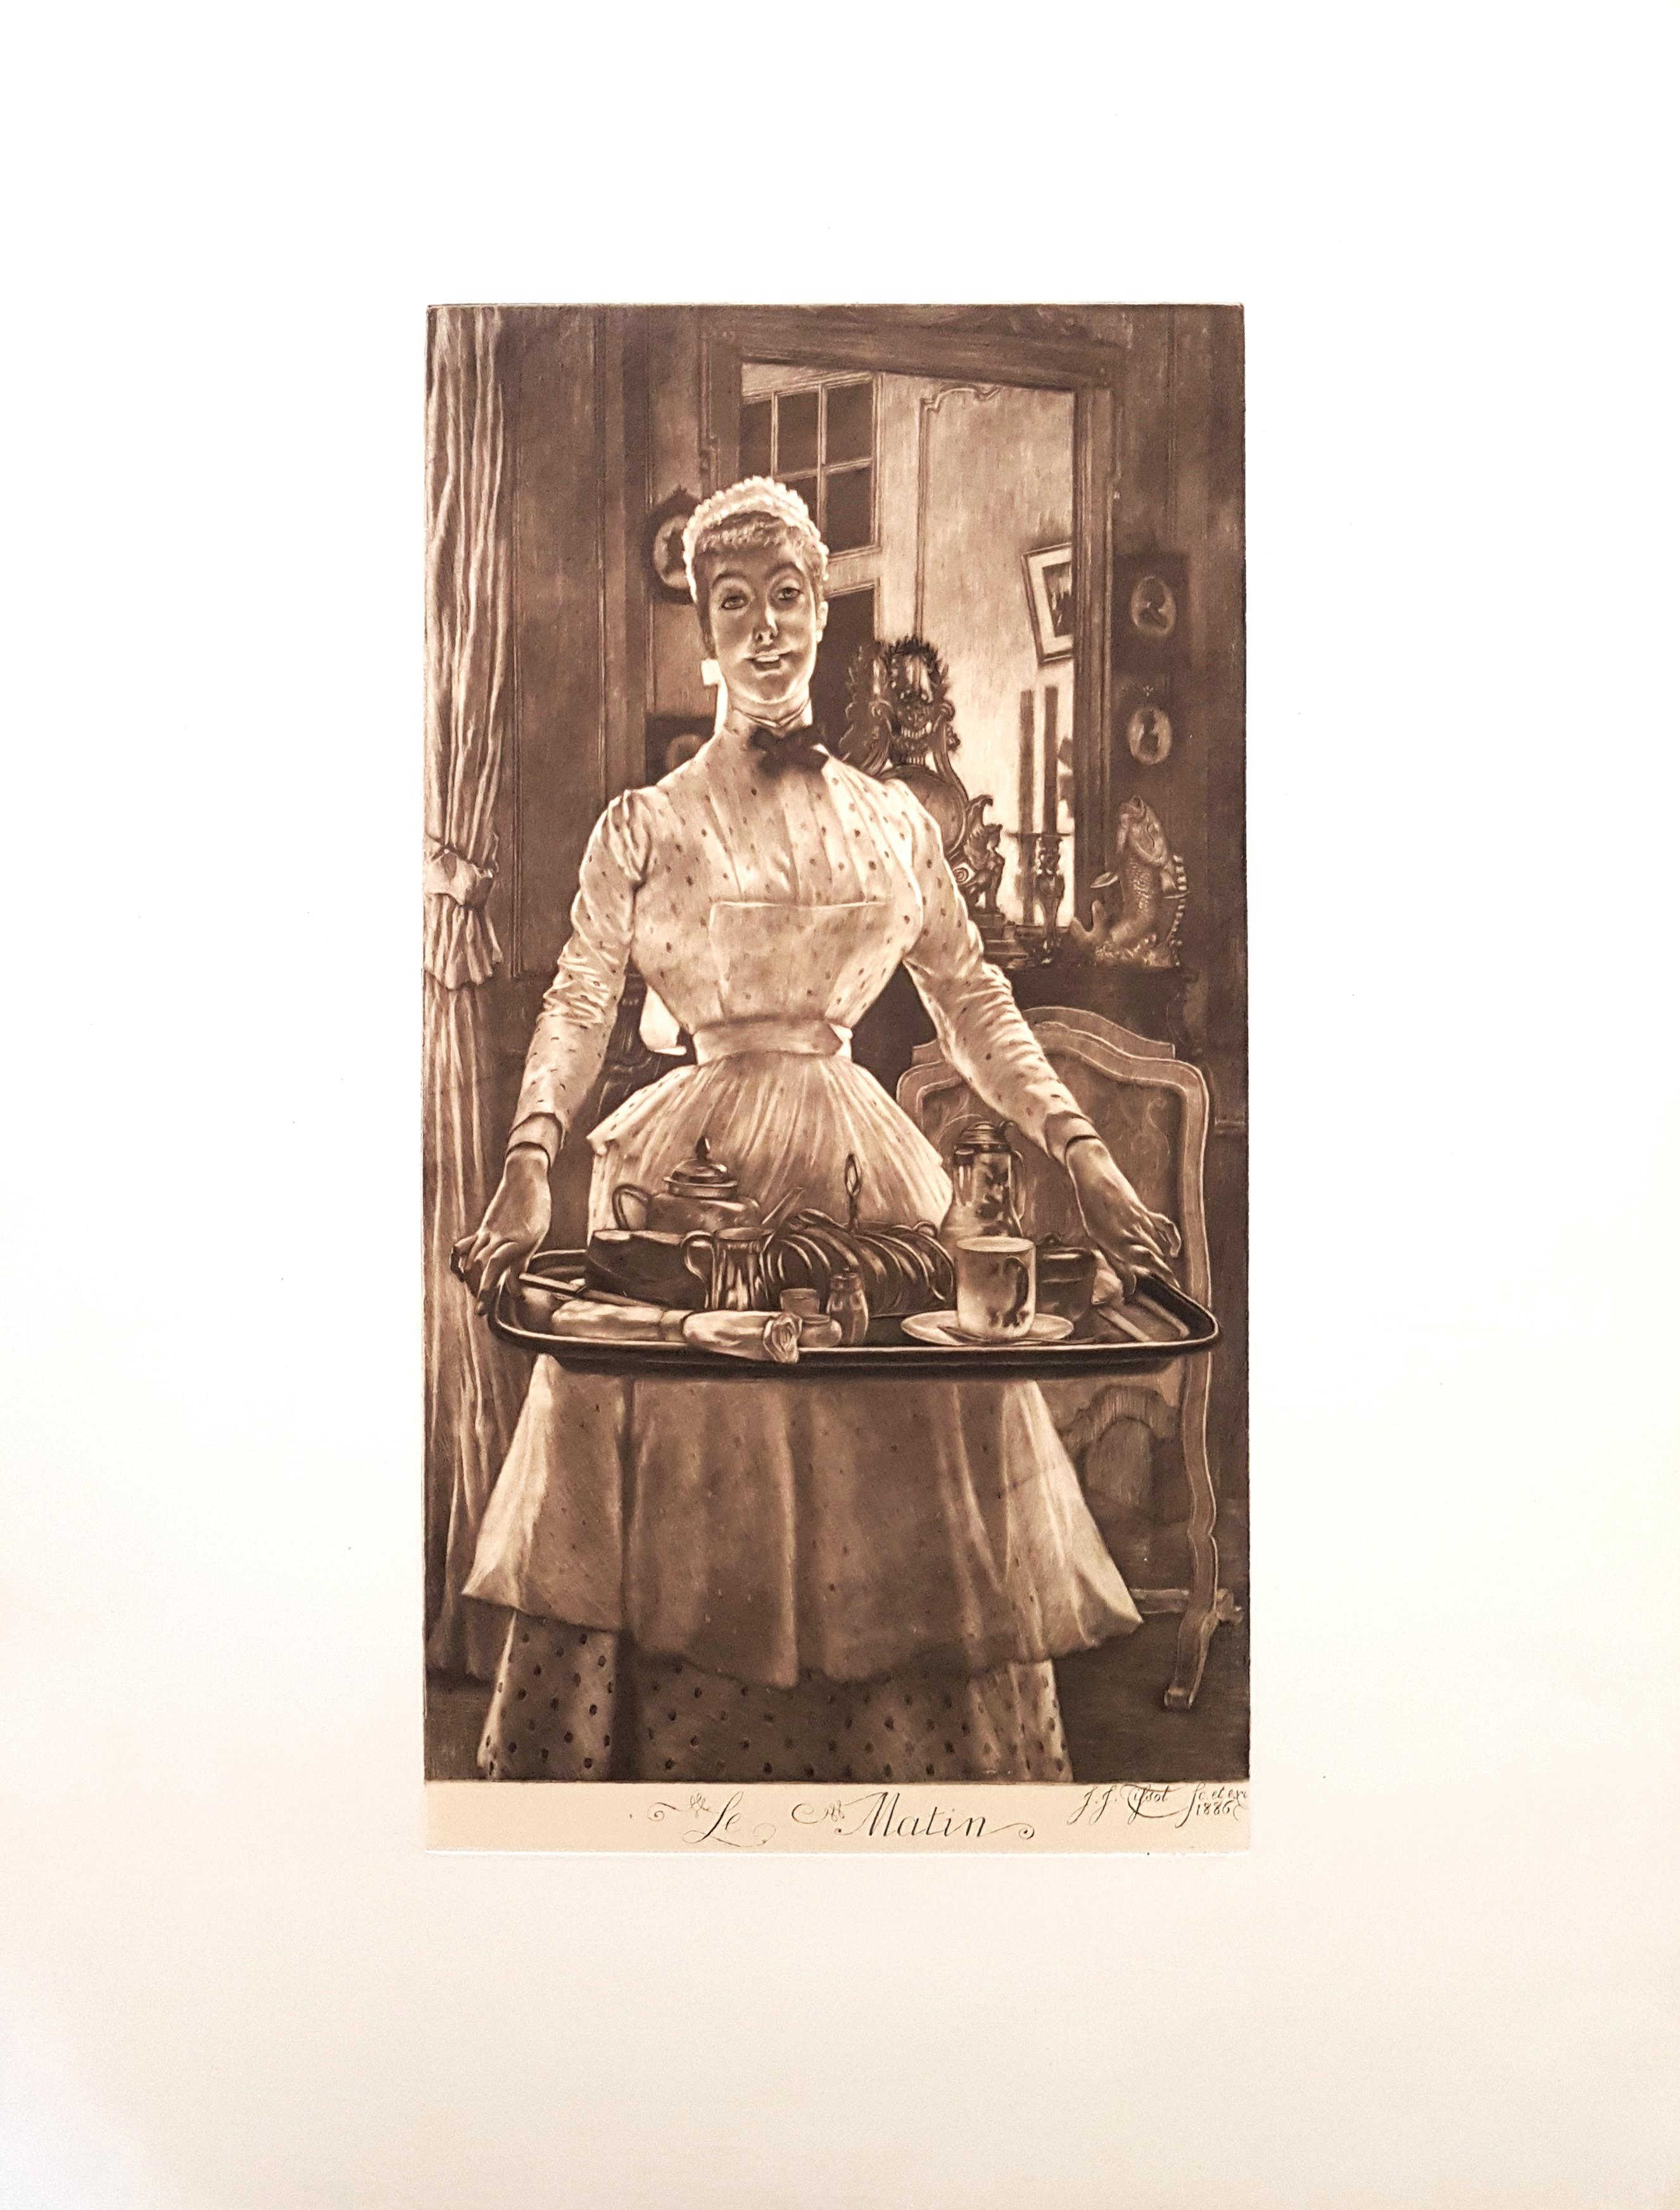 Le Matin - Original Etching by James Tissot - 1886